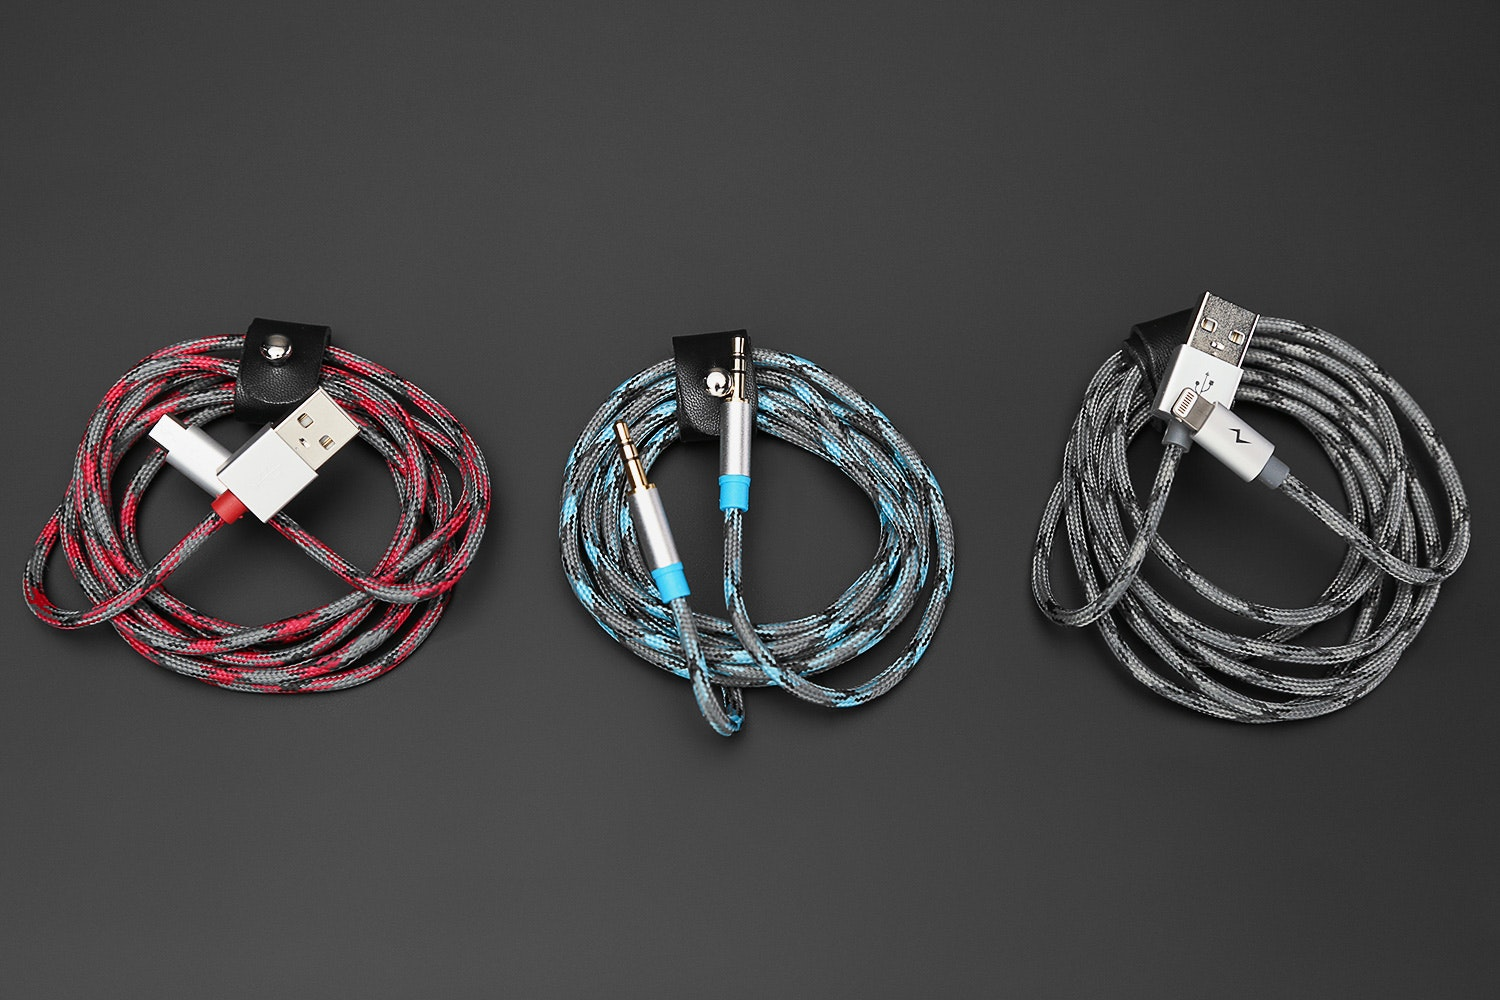 Logiix Piston Connect Braided Cables